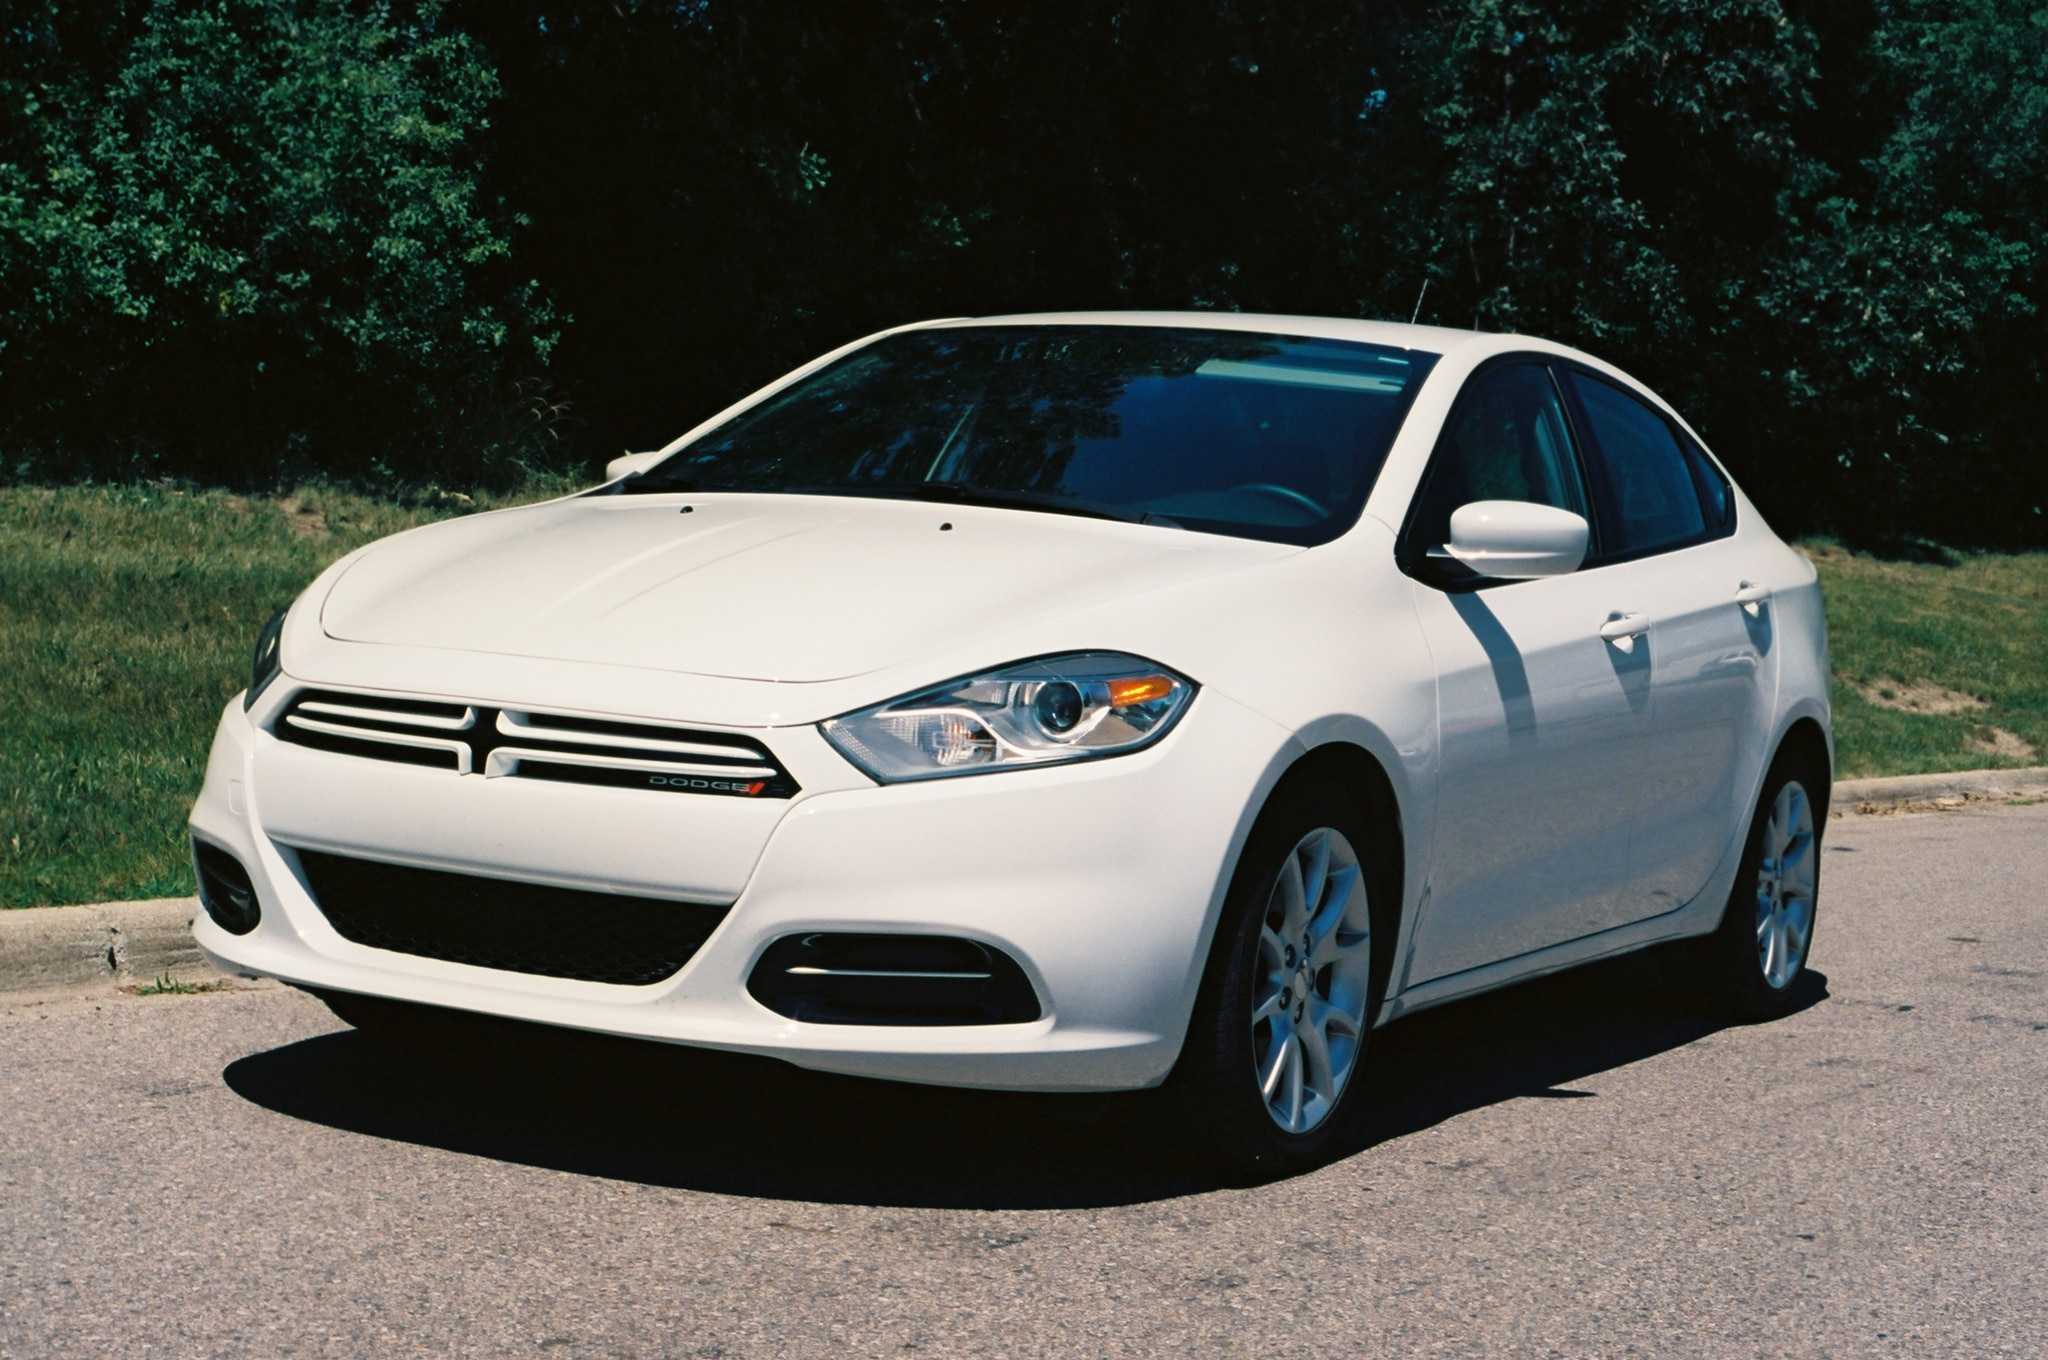 2013 Dodge Dart Sxt Four Seasons Update August 2013